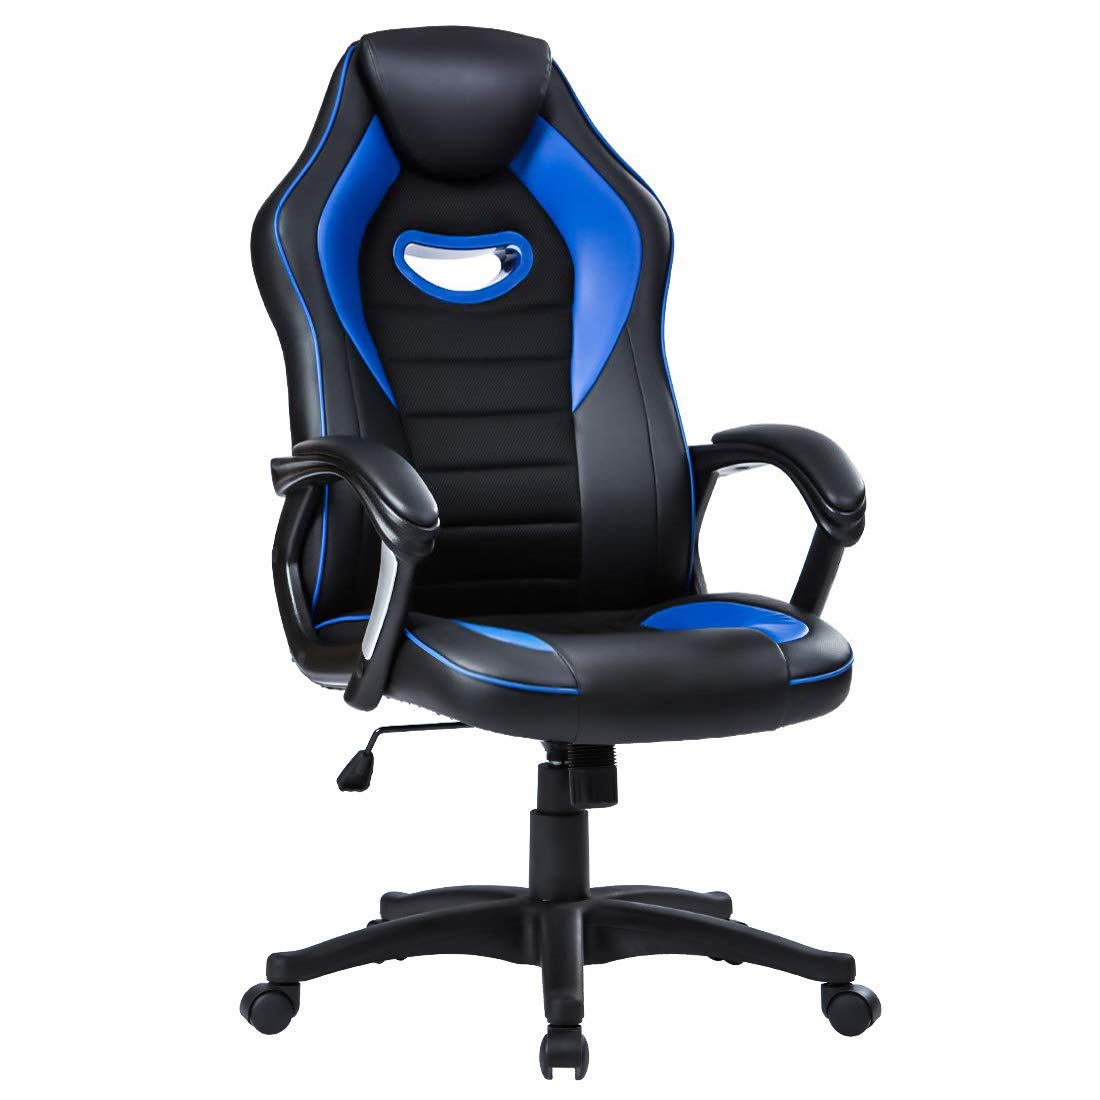 LIANFENG Racing Style High Back Leather Gaming Office Chair, Ergonomic Swivel Computer Desk Chair with Headrest and Armrest for Home and Office, Blue by LIANFENG